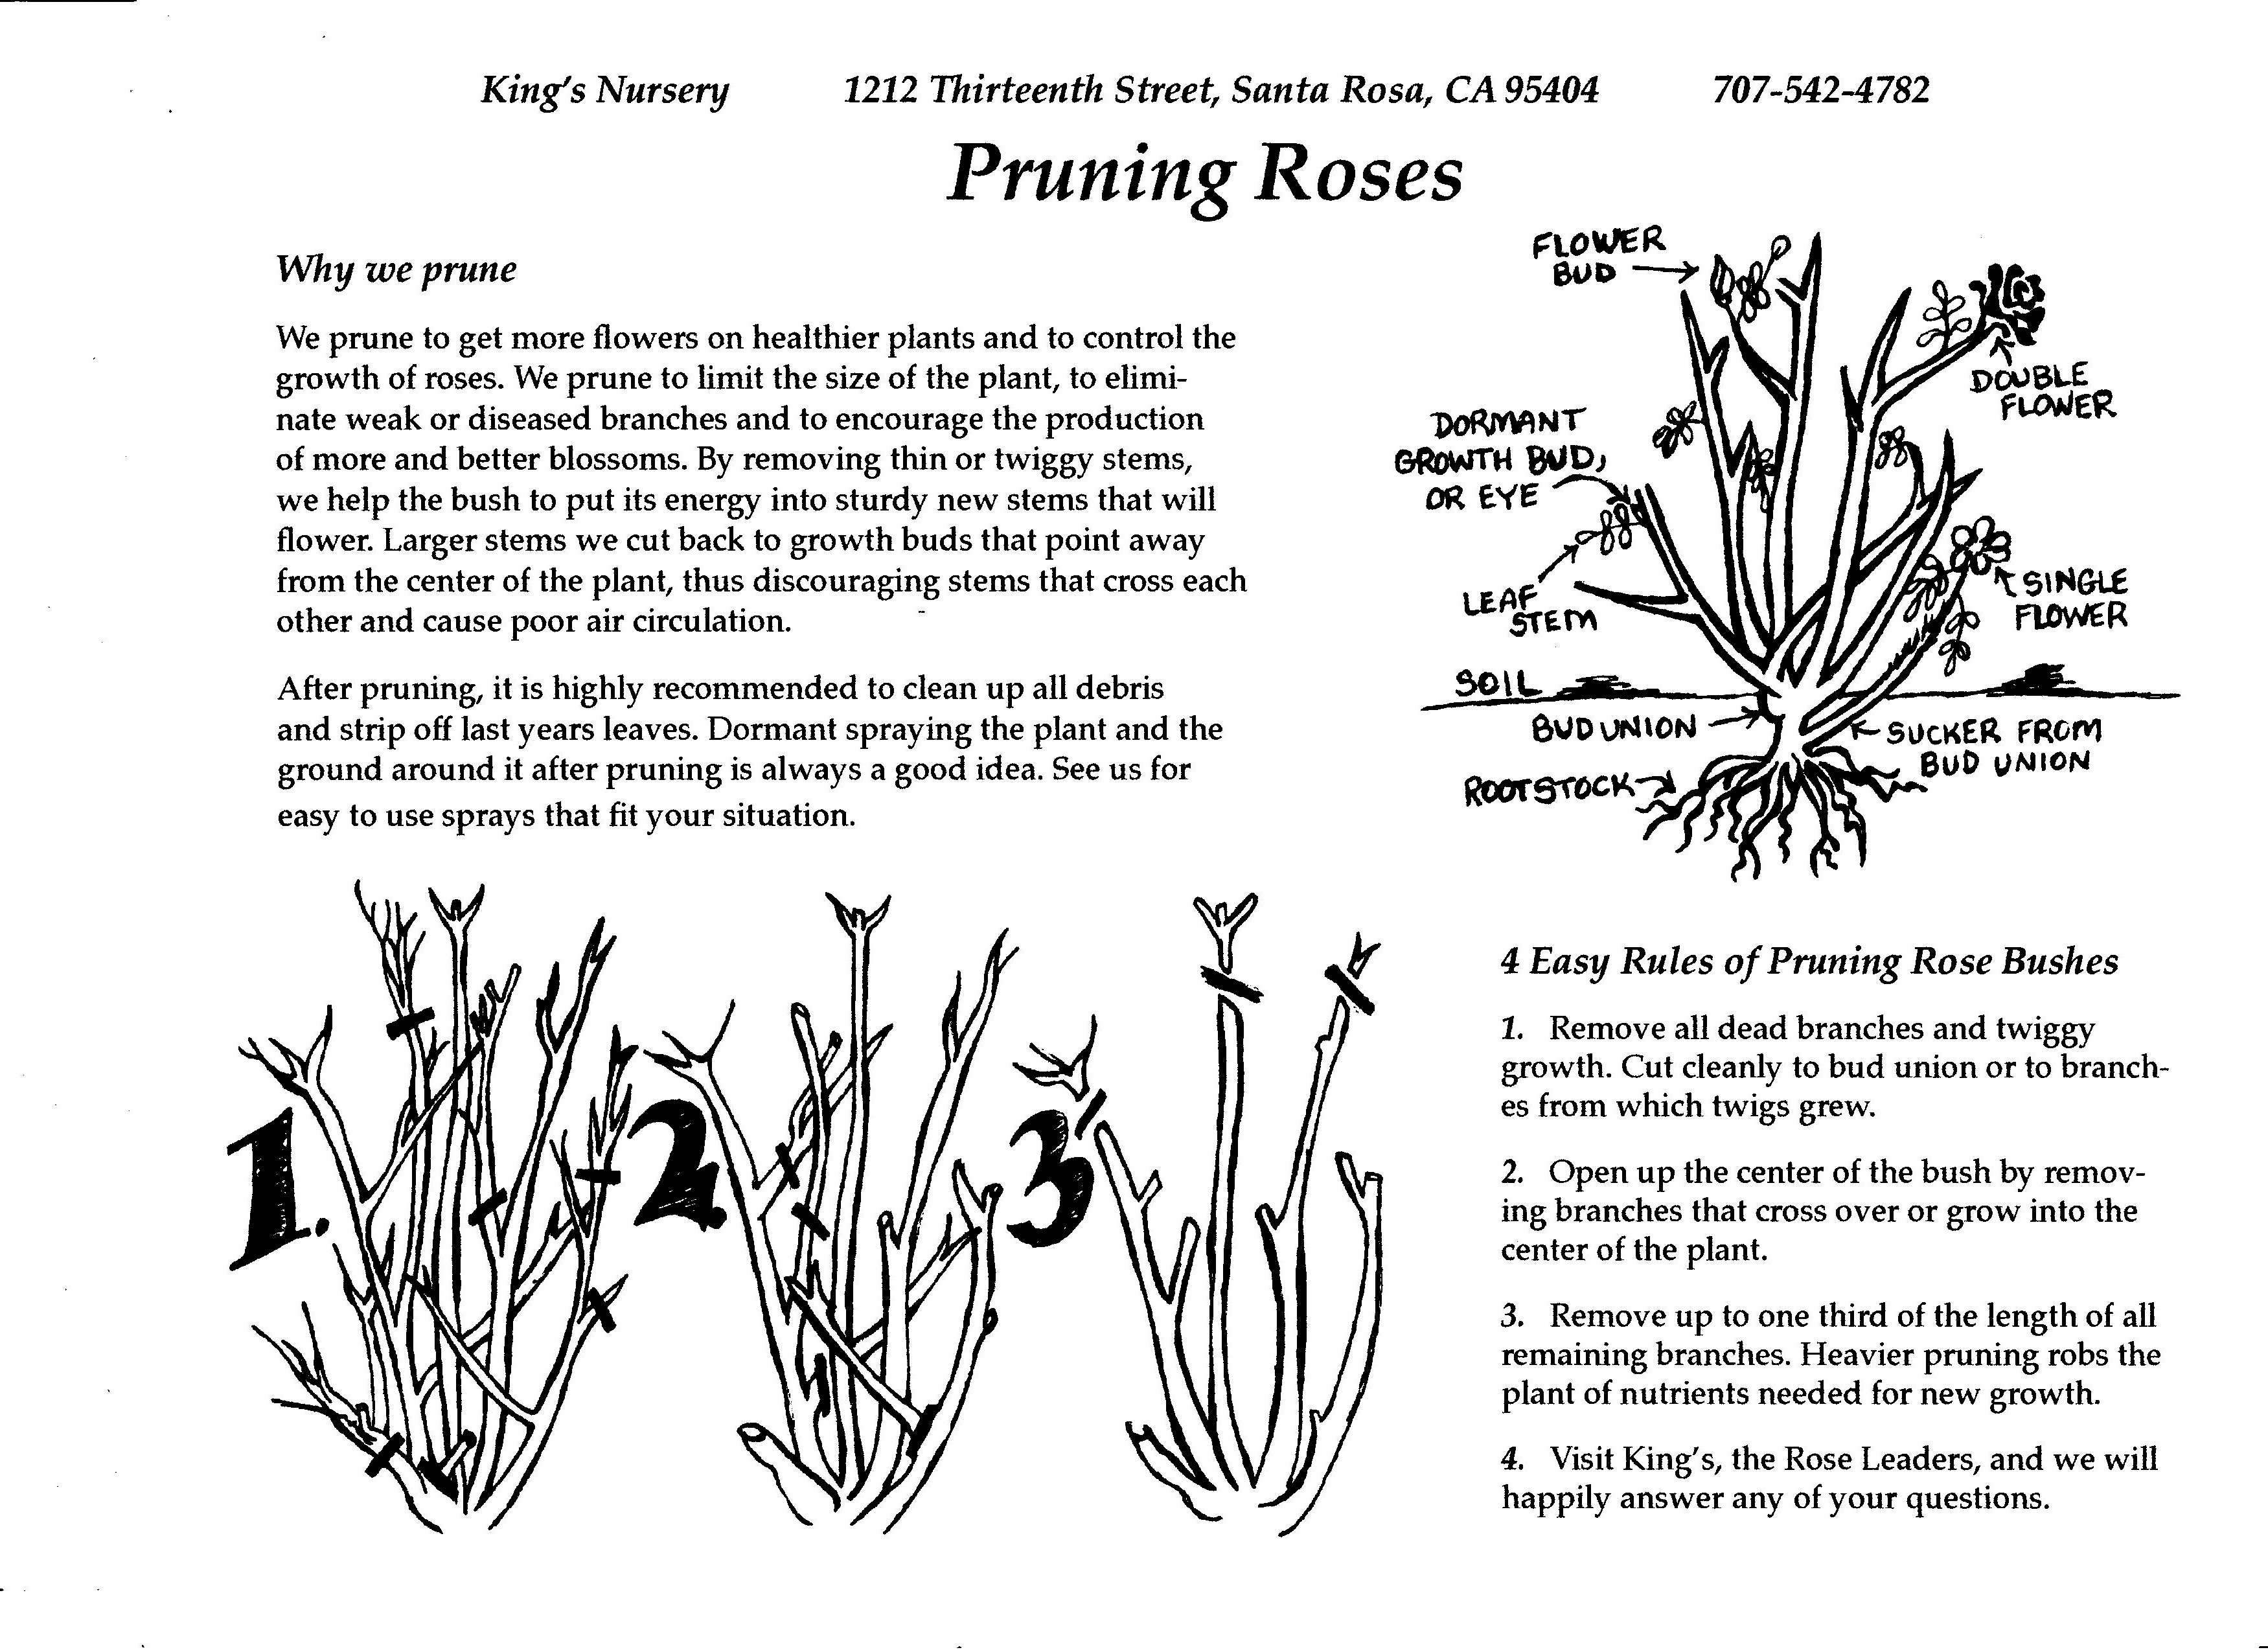 How to prune a rose bush - Rose Care And Pruning